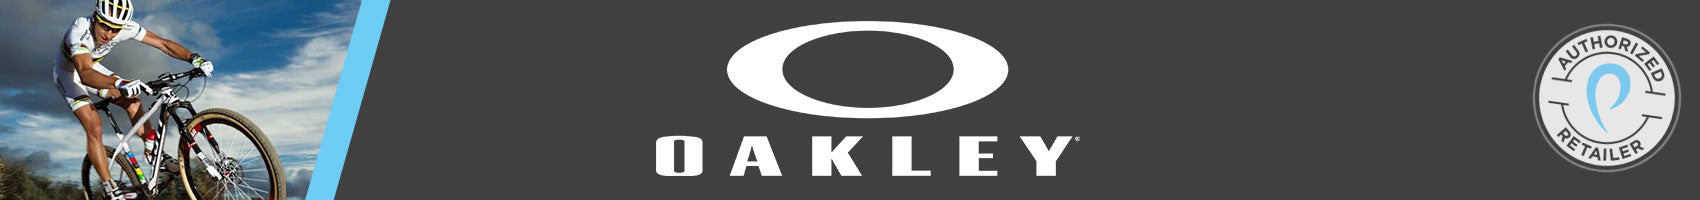 Oakley Sunglasses, Apparel, and Accessories